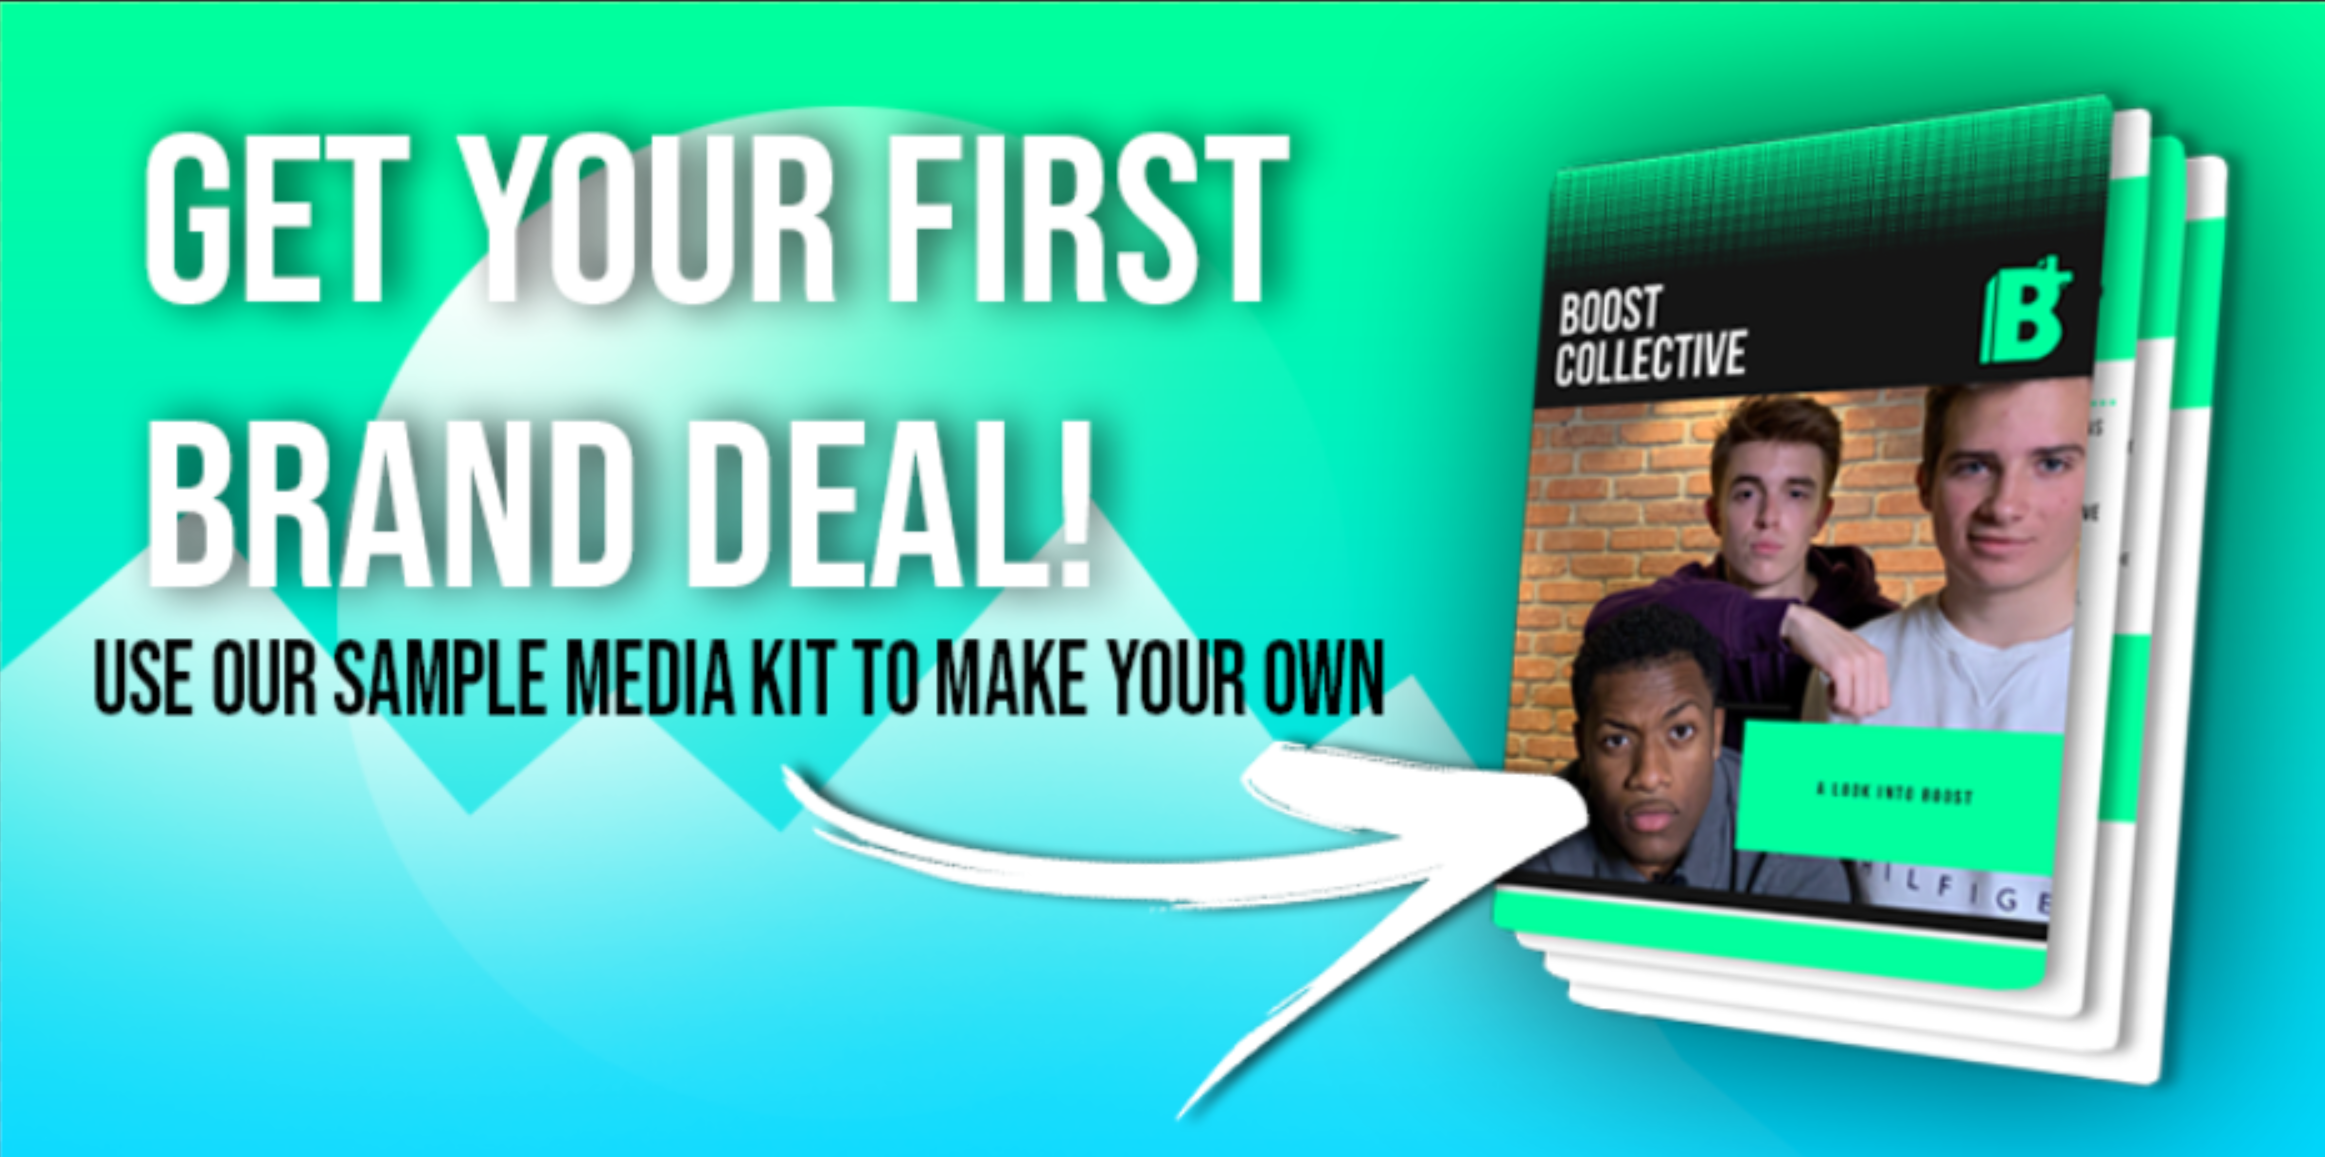 Sample Media Kit template for building your brand